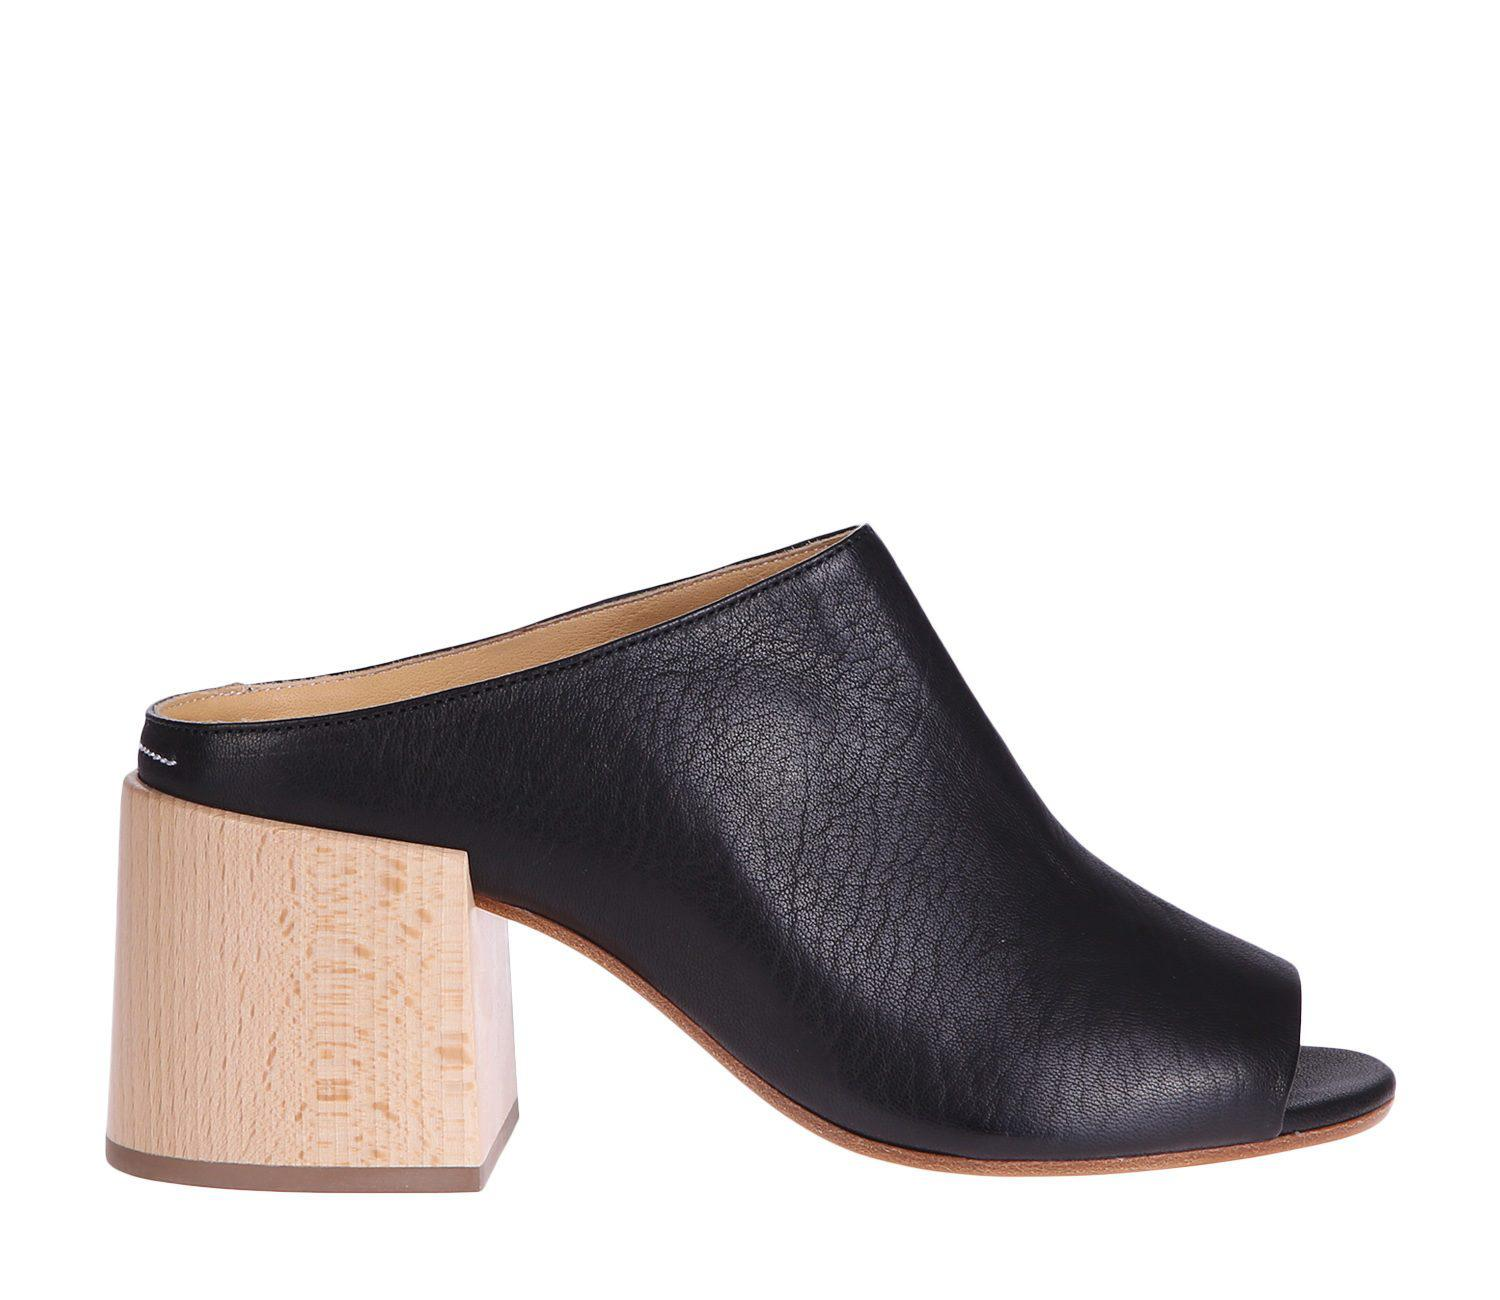 ee93e99d91b2 Lyst - Mm6 By Maison Martin Margiela Leather Mules - Save 50%